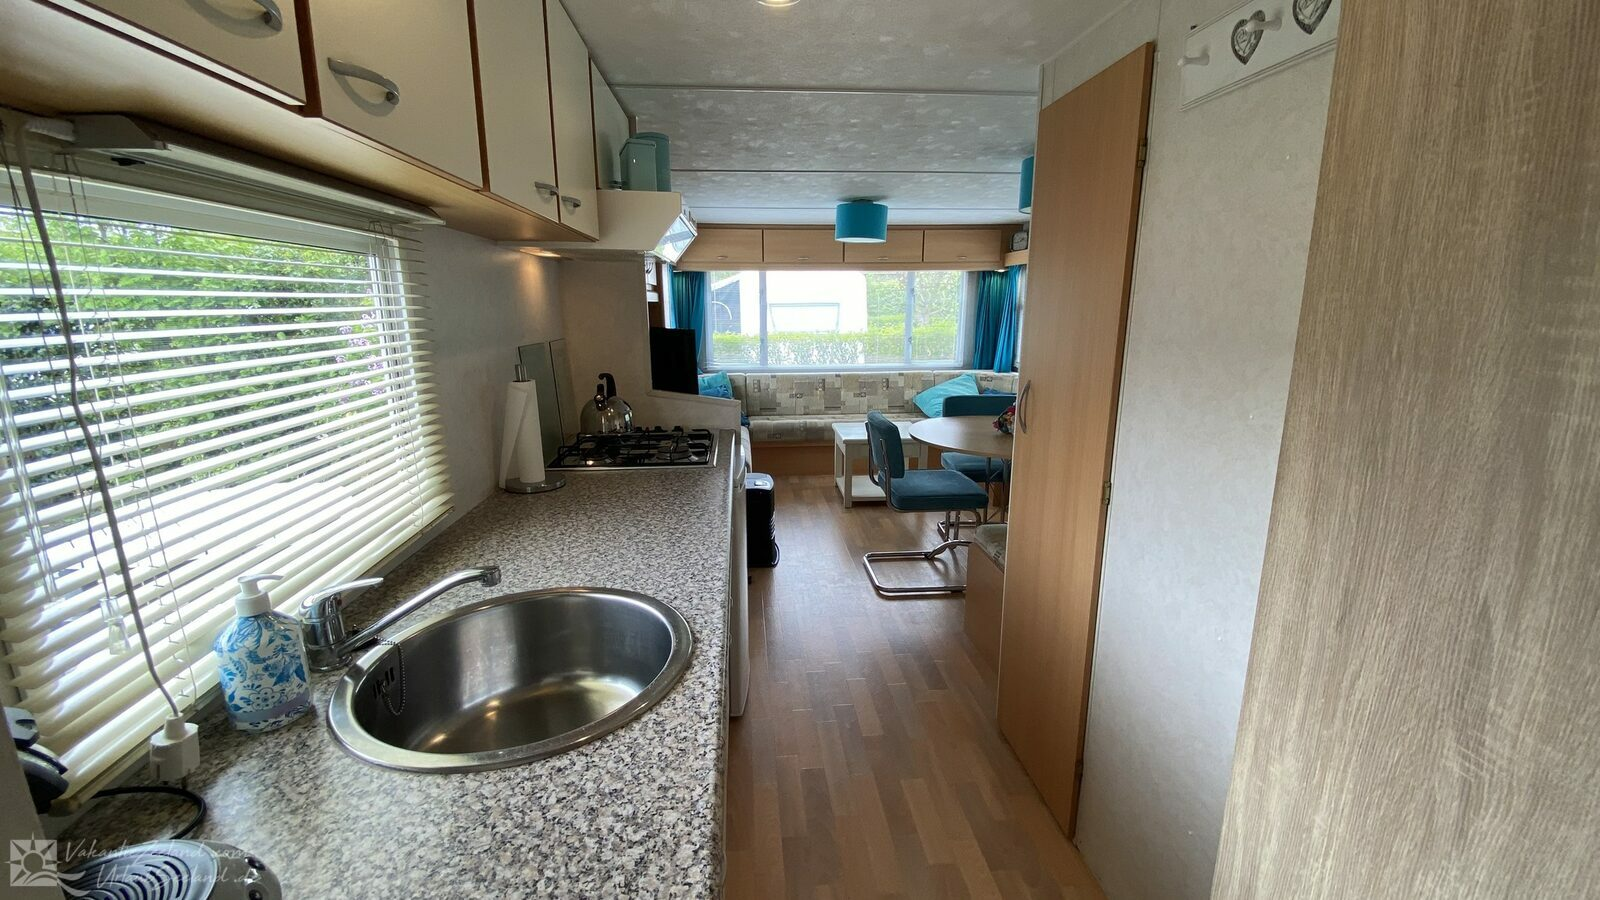 VZ996 Mobile home in Burgh Haamstede